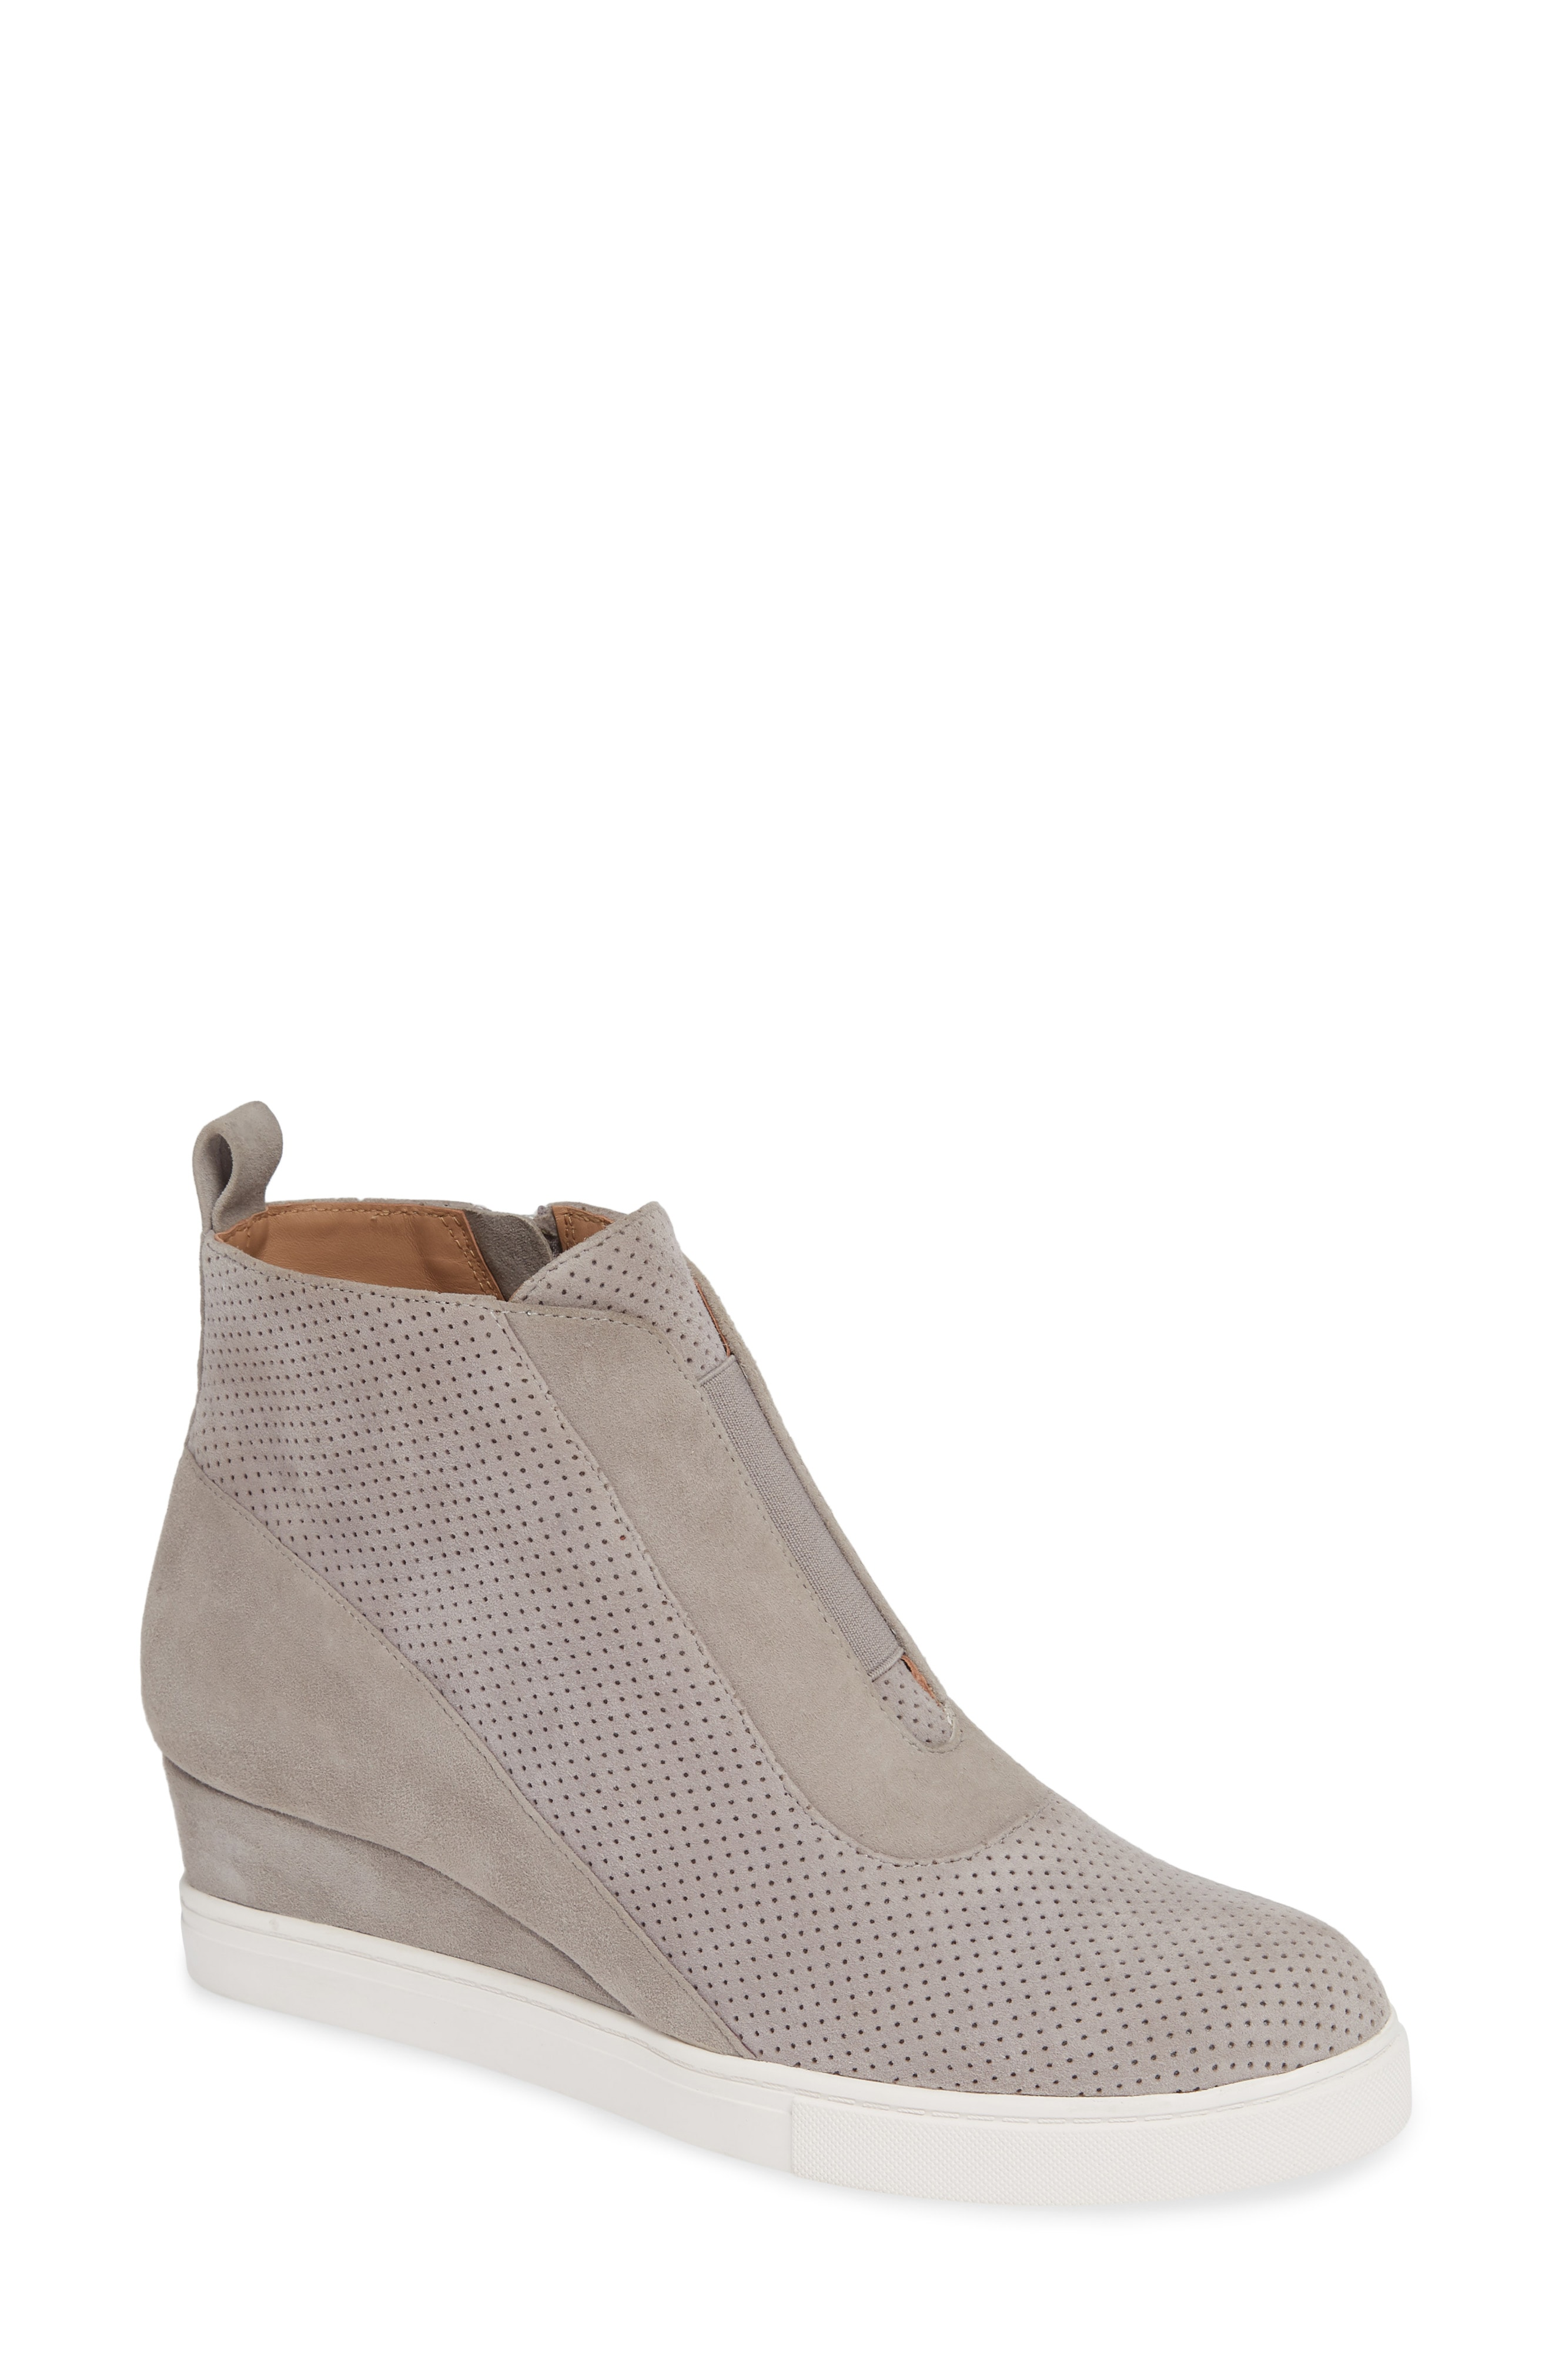 Wedges for Women | Nordstrom